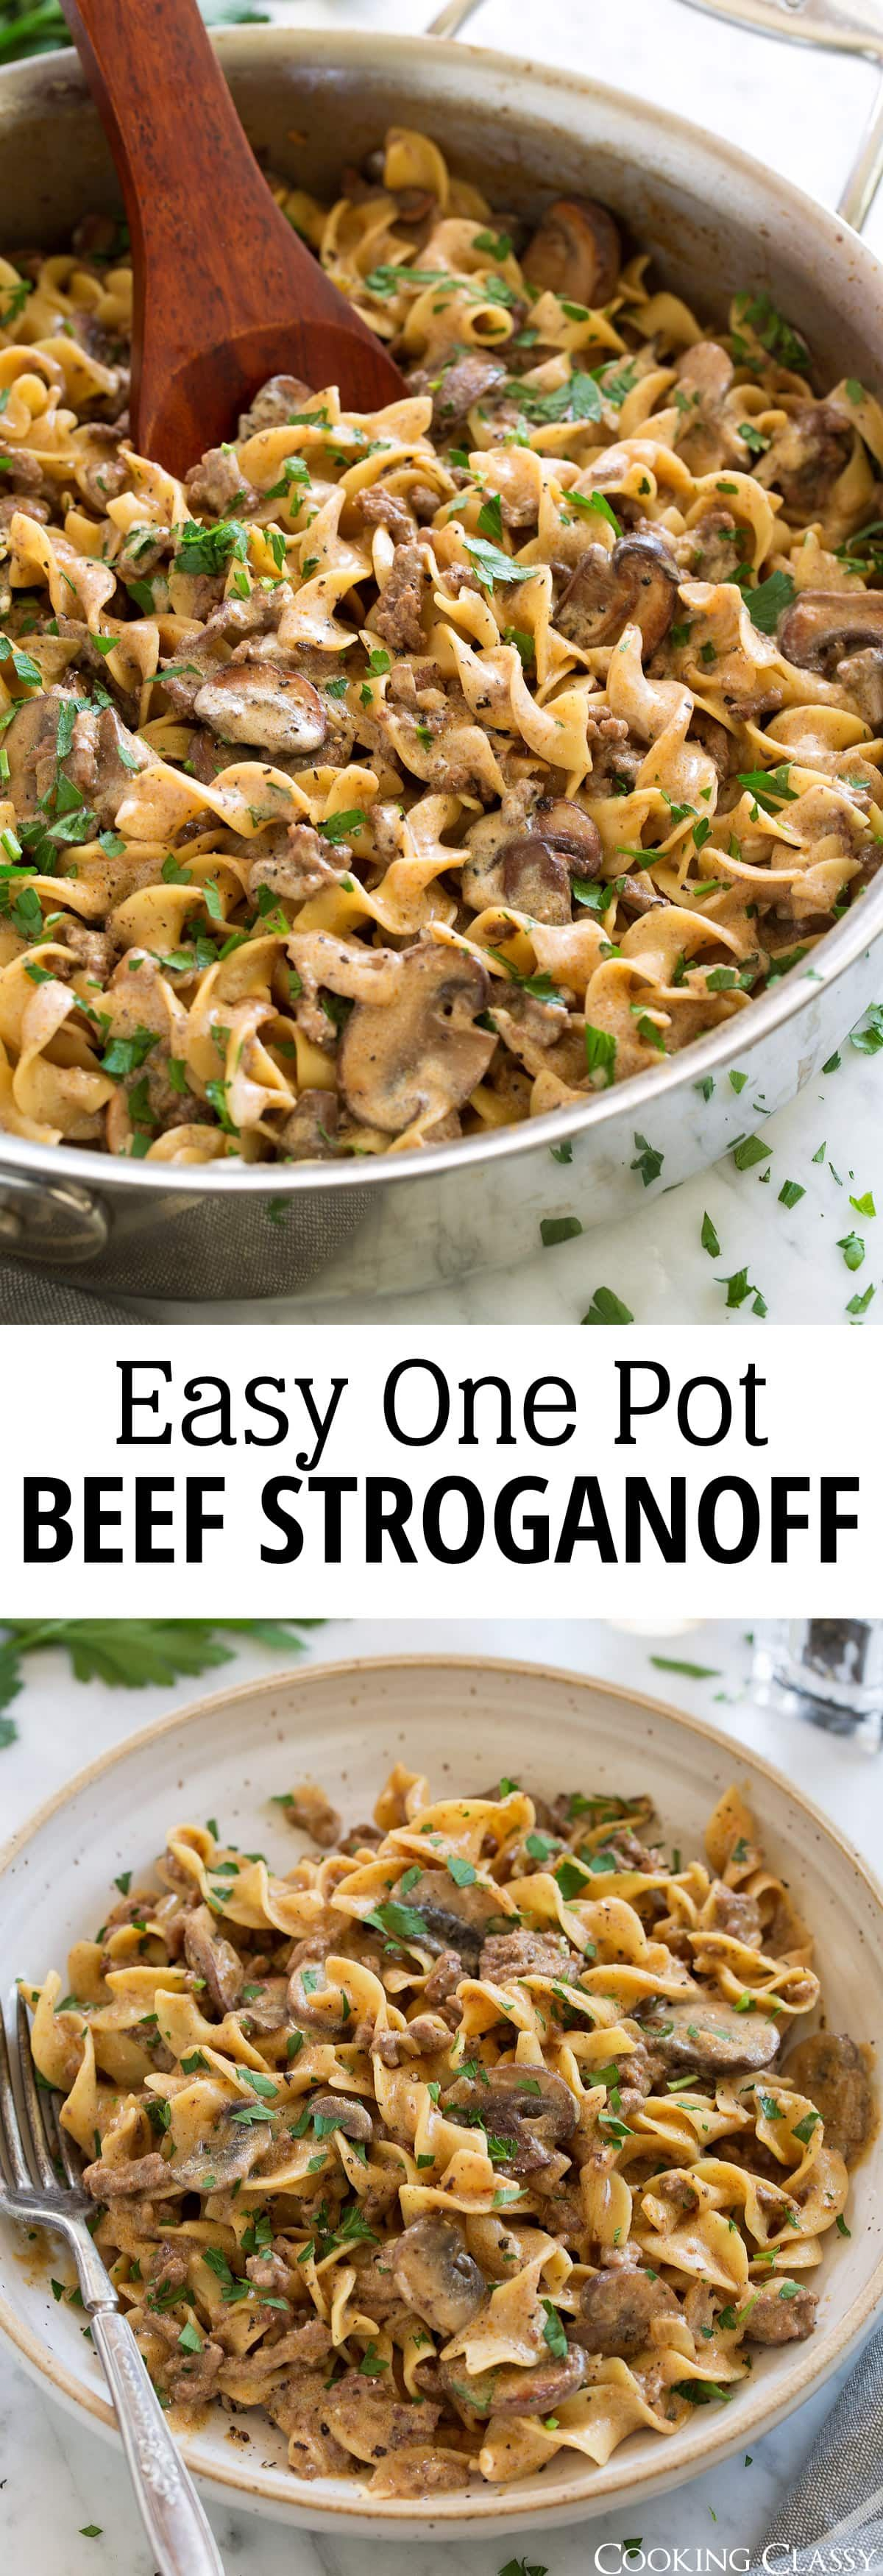 Beef Stroganoff {Easy One Pot Recipe} - this is so hearty and delicious! Love that it uses ground beef but still has great flavor. #beefsteoganoff #dinner #groundbeef #recipe via @cookingclassy #easyonepotmeals